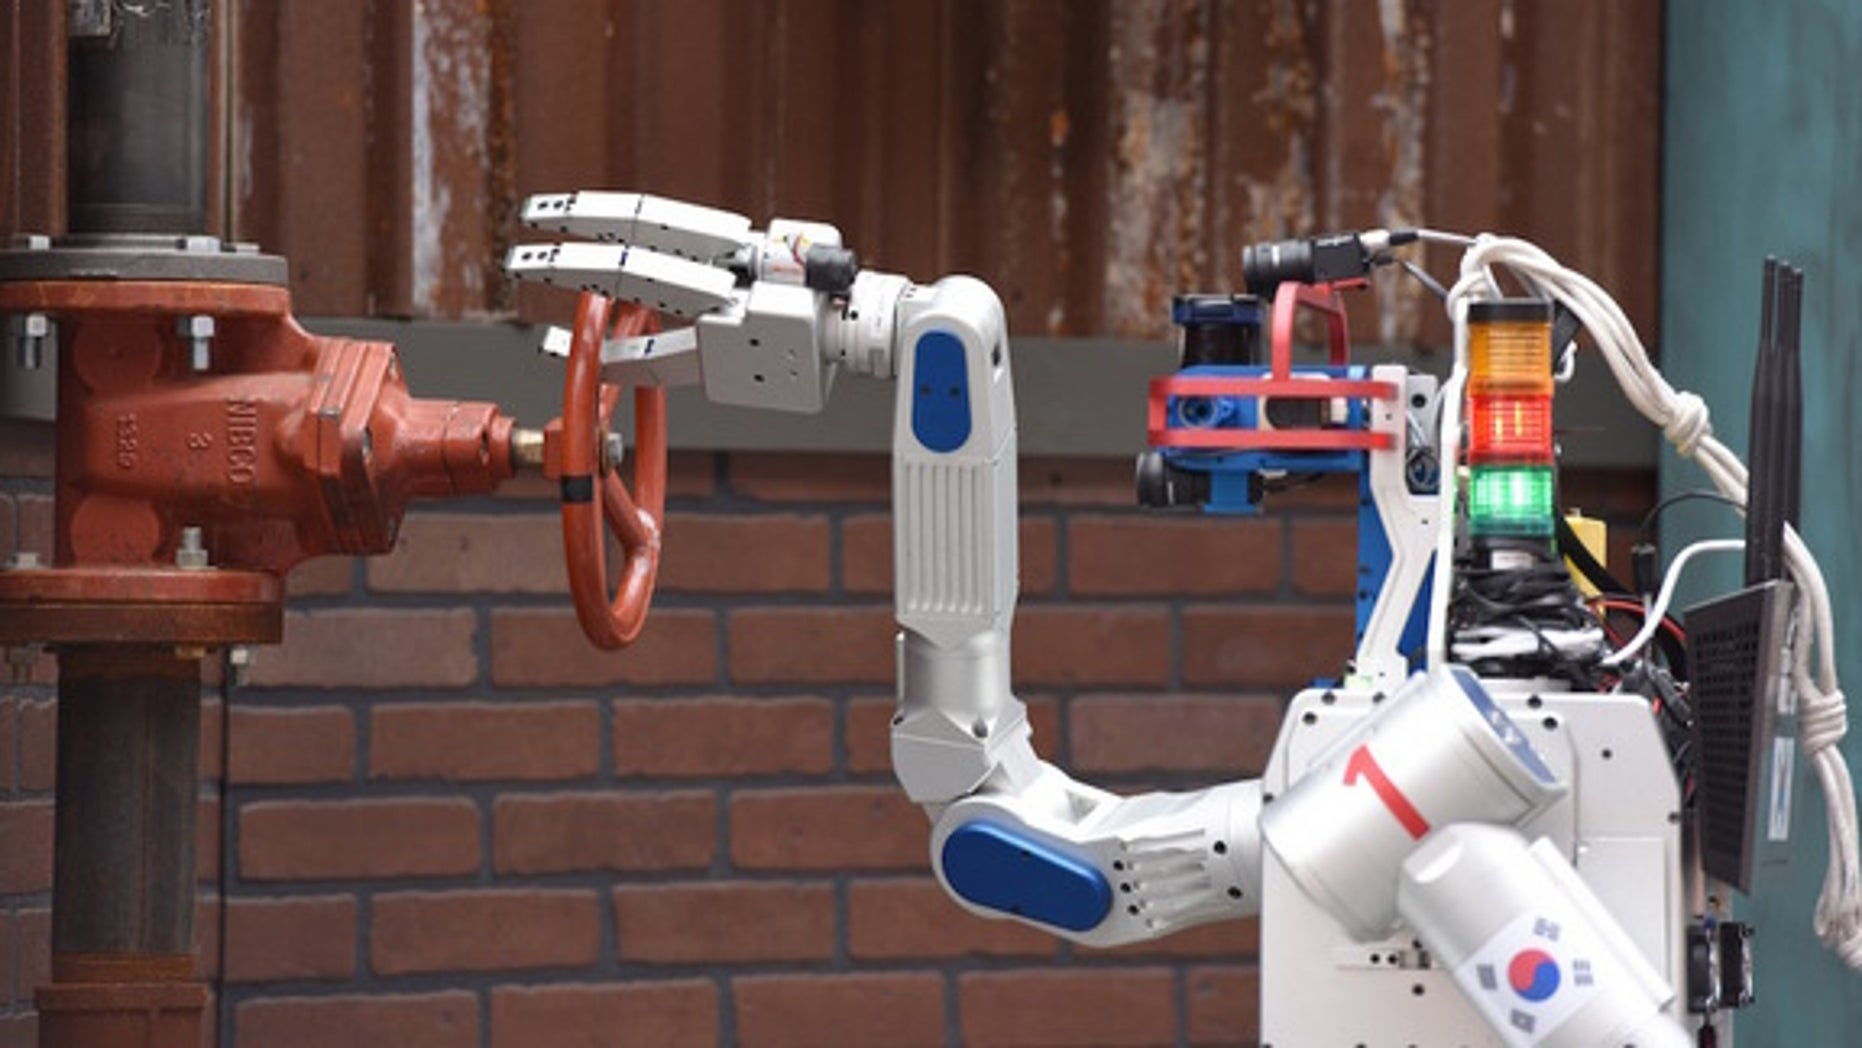 The robot from South Korean Team KAIST swept the field at the DARPA Robotics Challenge, successfully completing all tasks in the least amount of time.